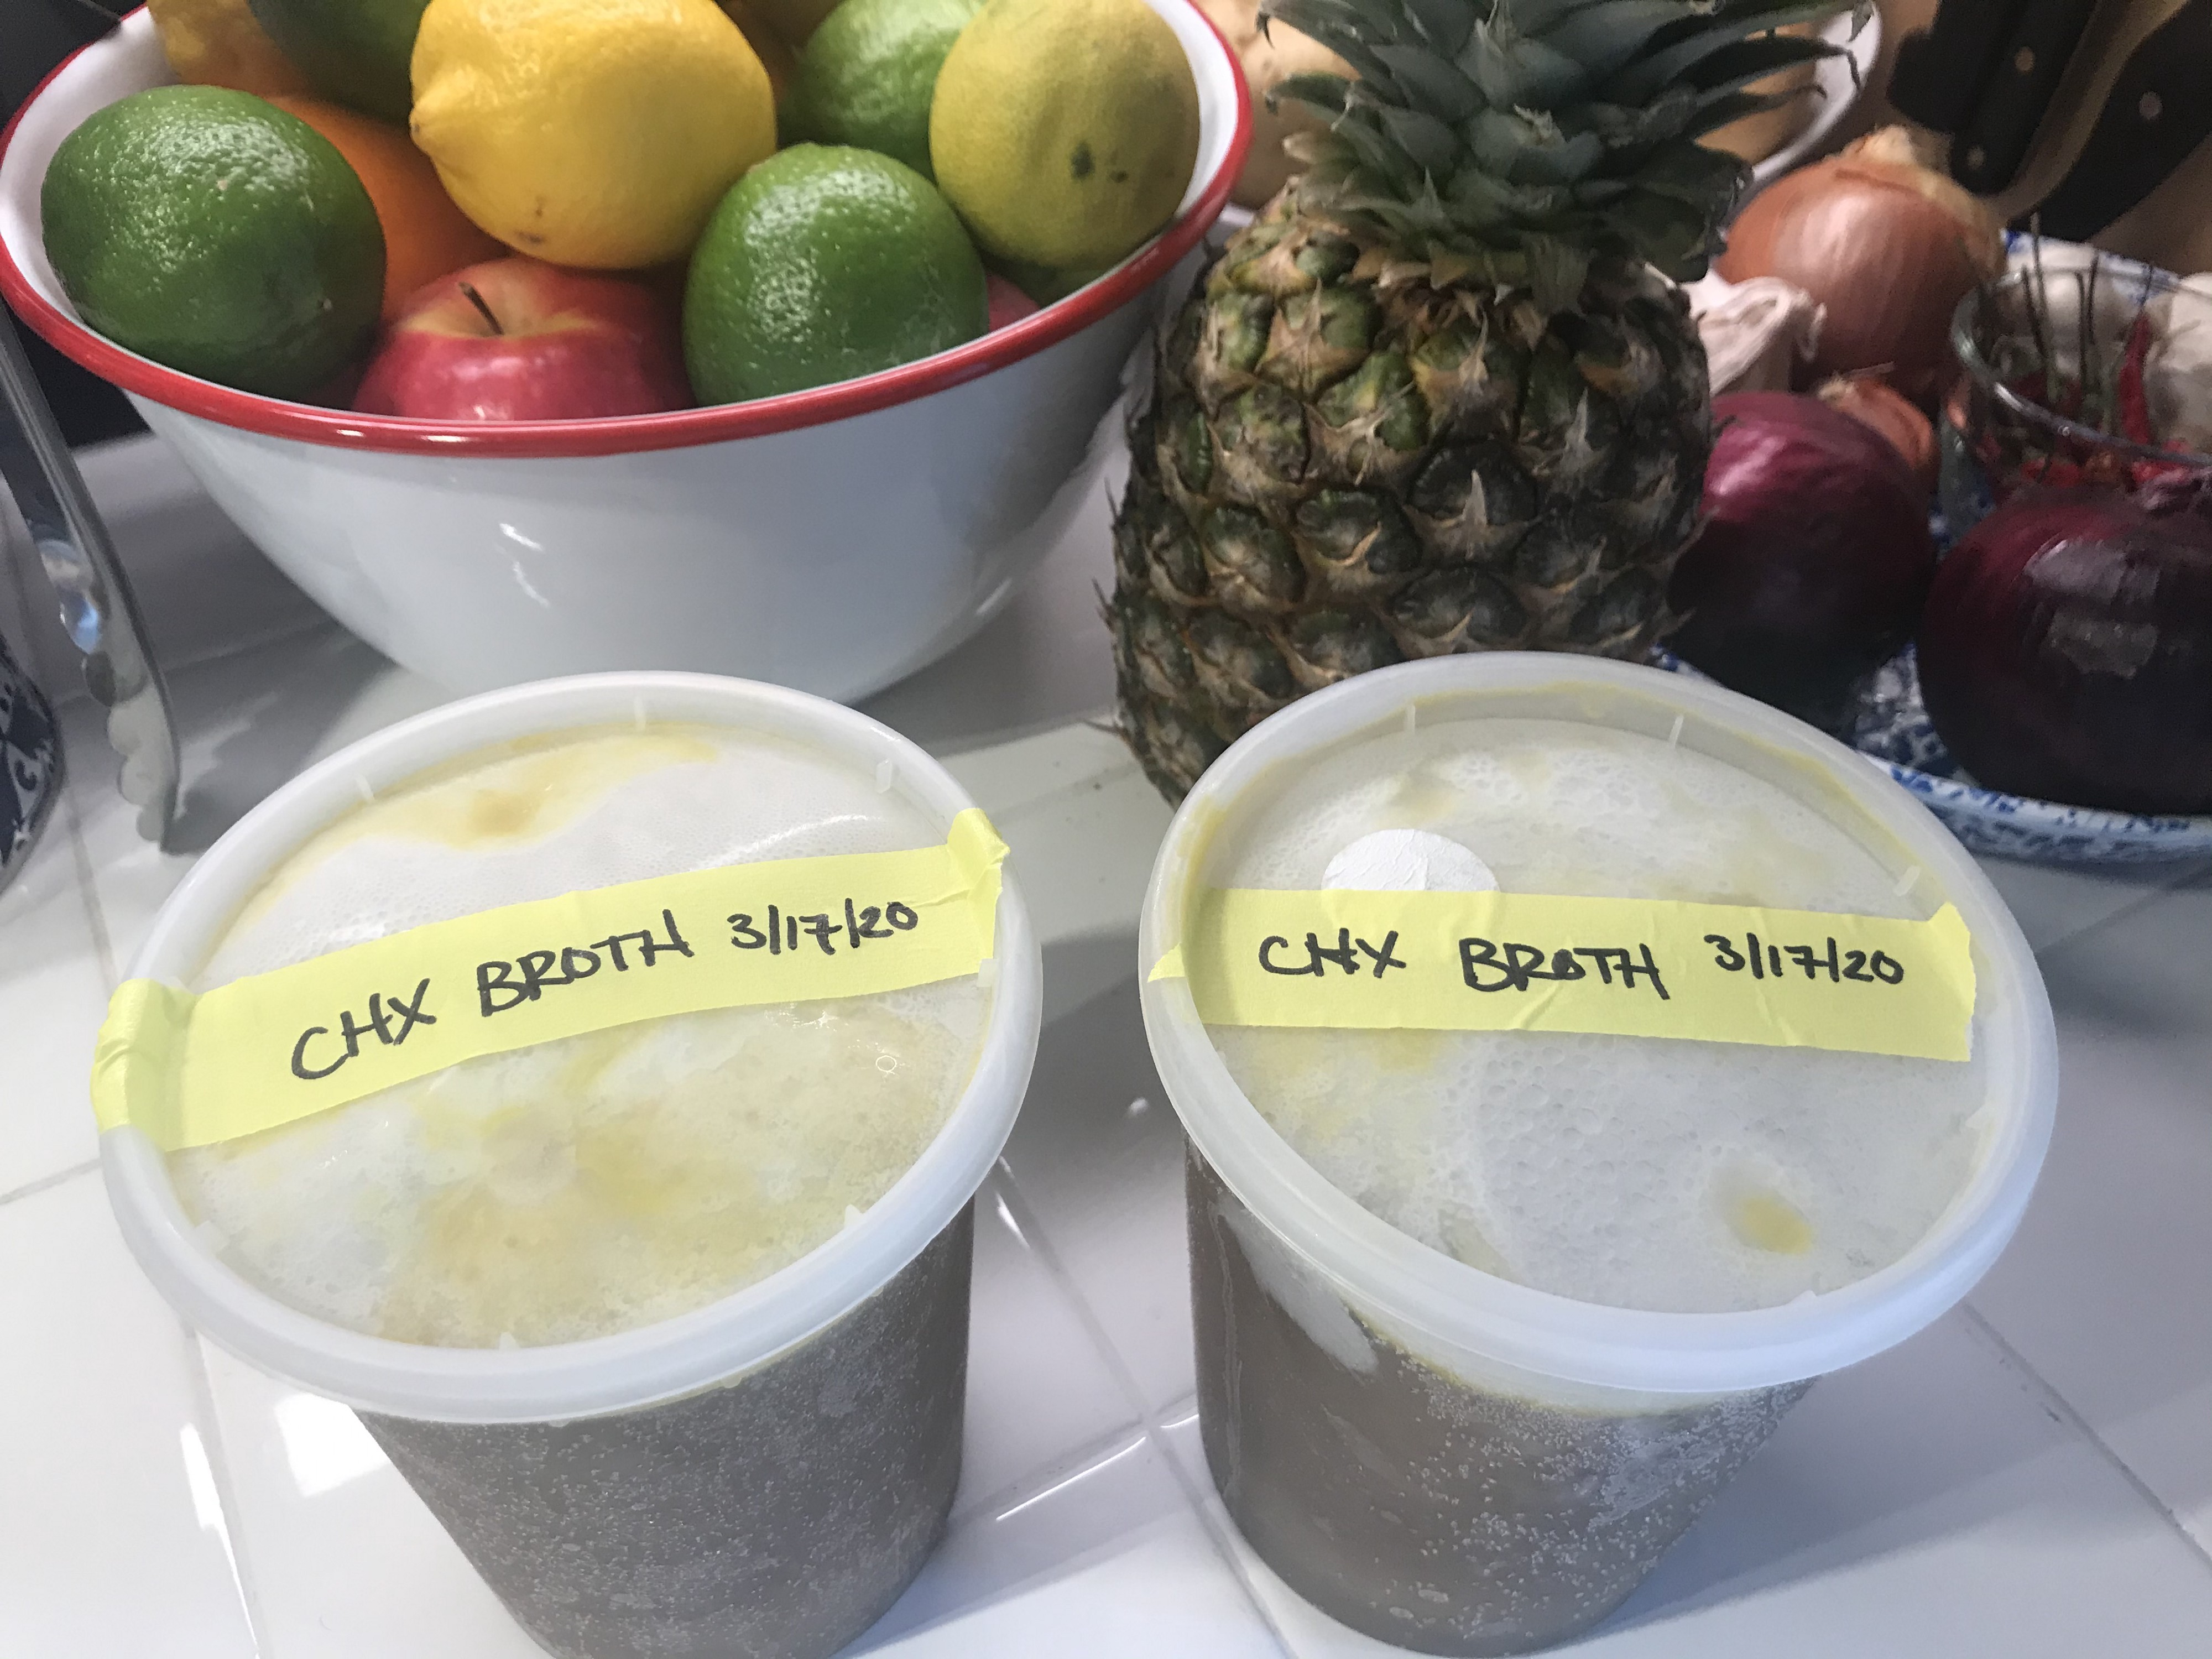 Two labeled containers of frozen chicken broth